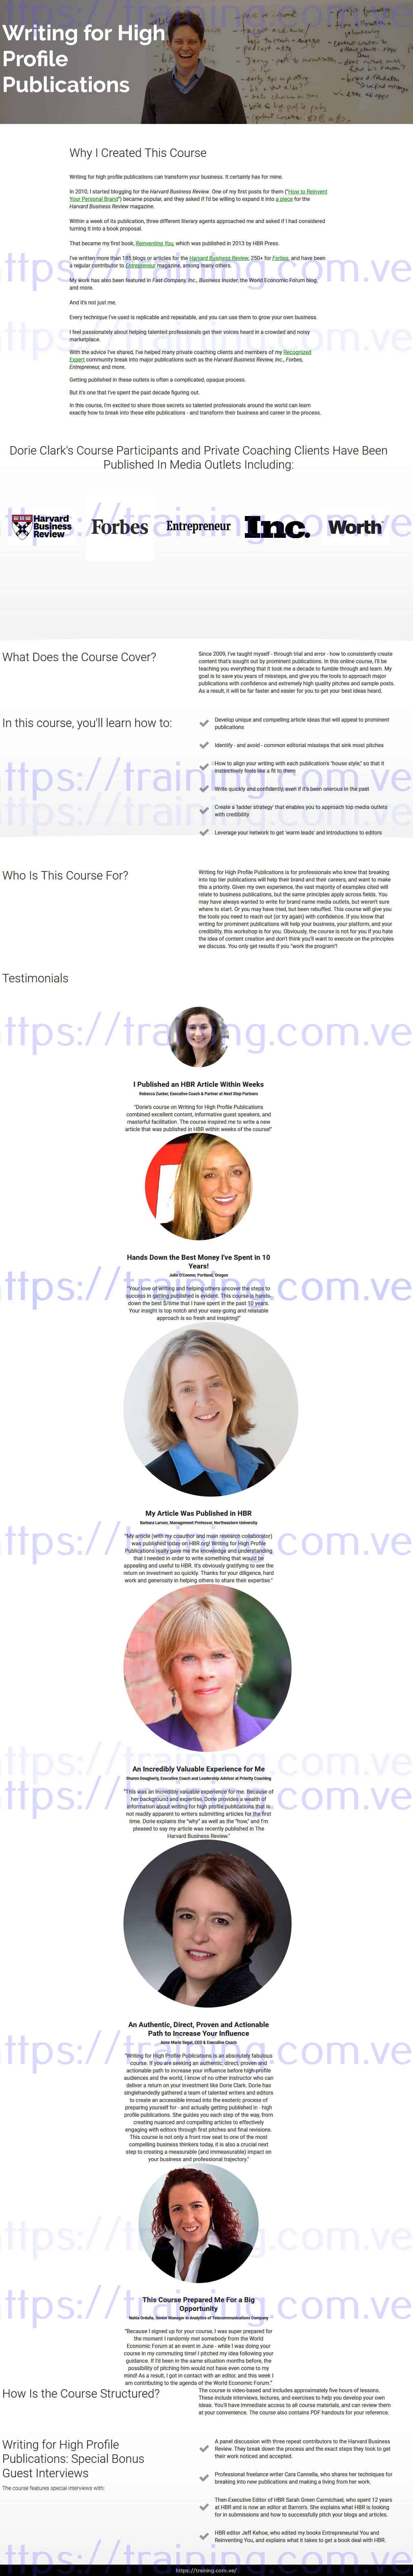 Writing for High Profile Publications by Dorie Clark Buy